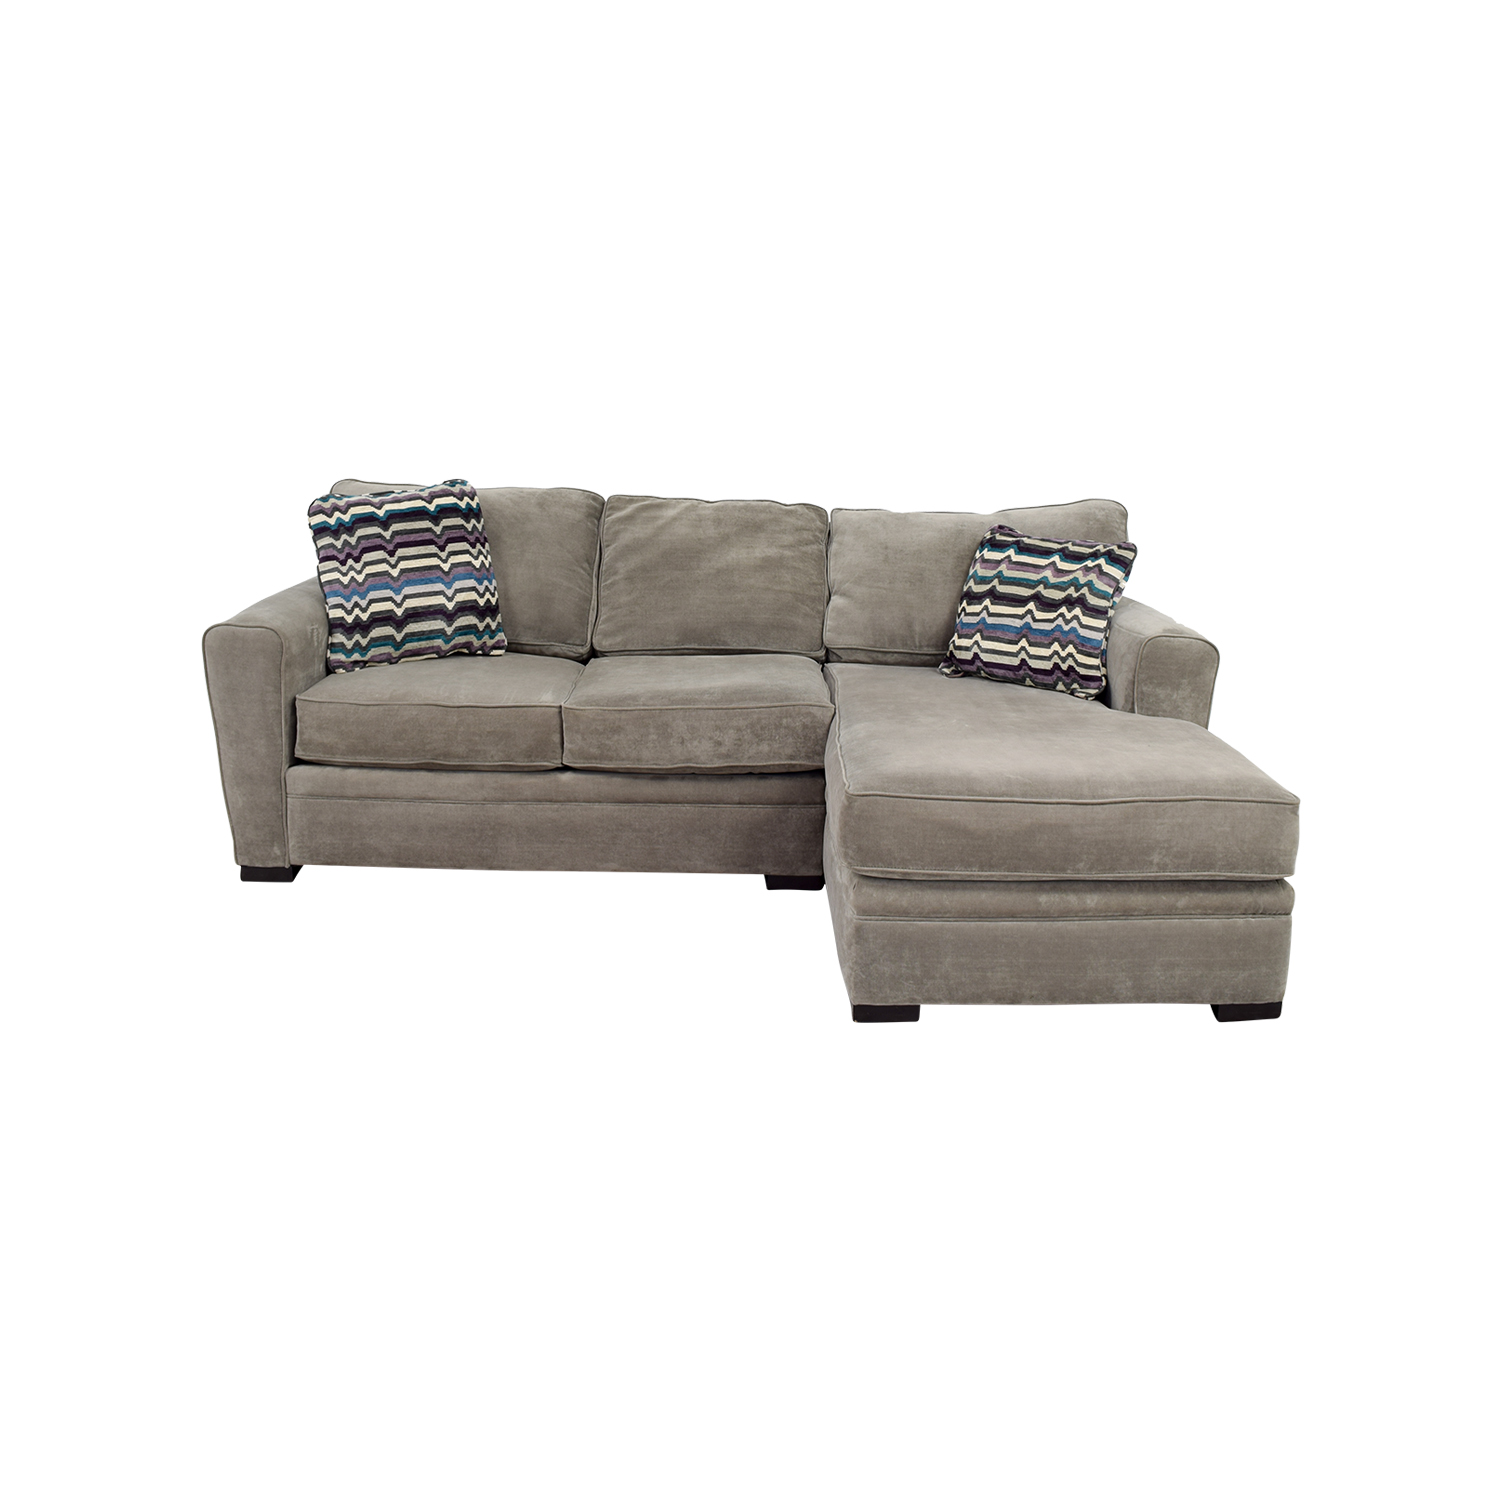 Raymour & Flanigan Raymour & Flanigan Artemis II  Microfiber Grey Sectional for sale